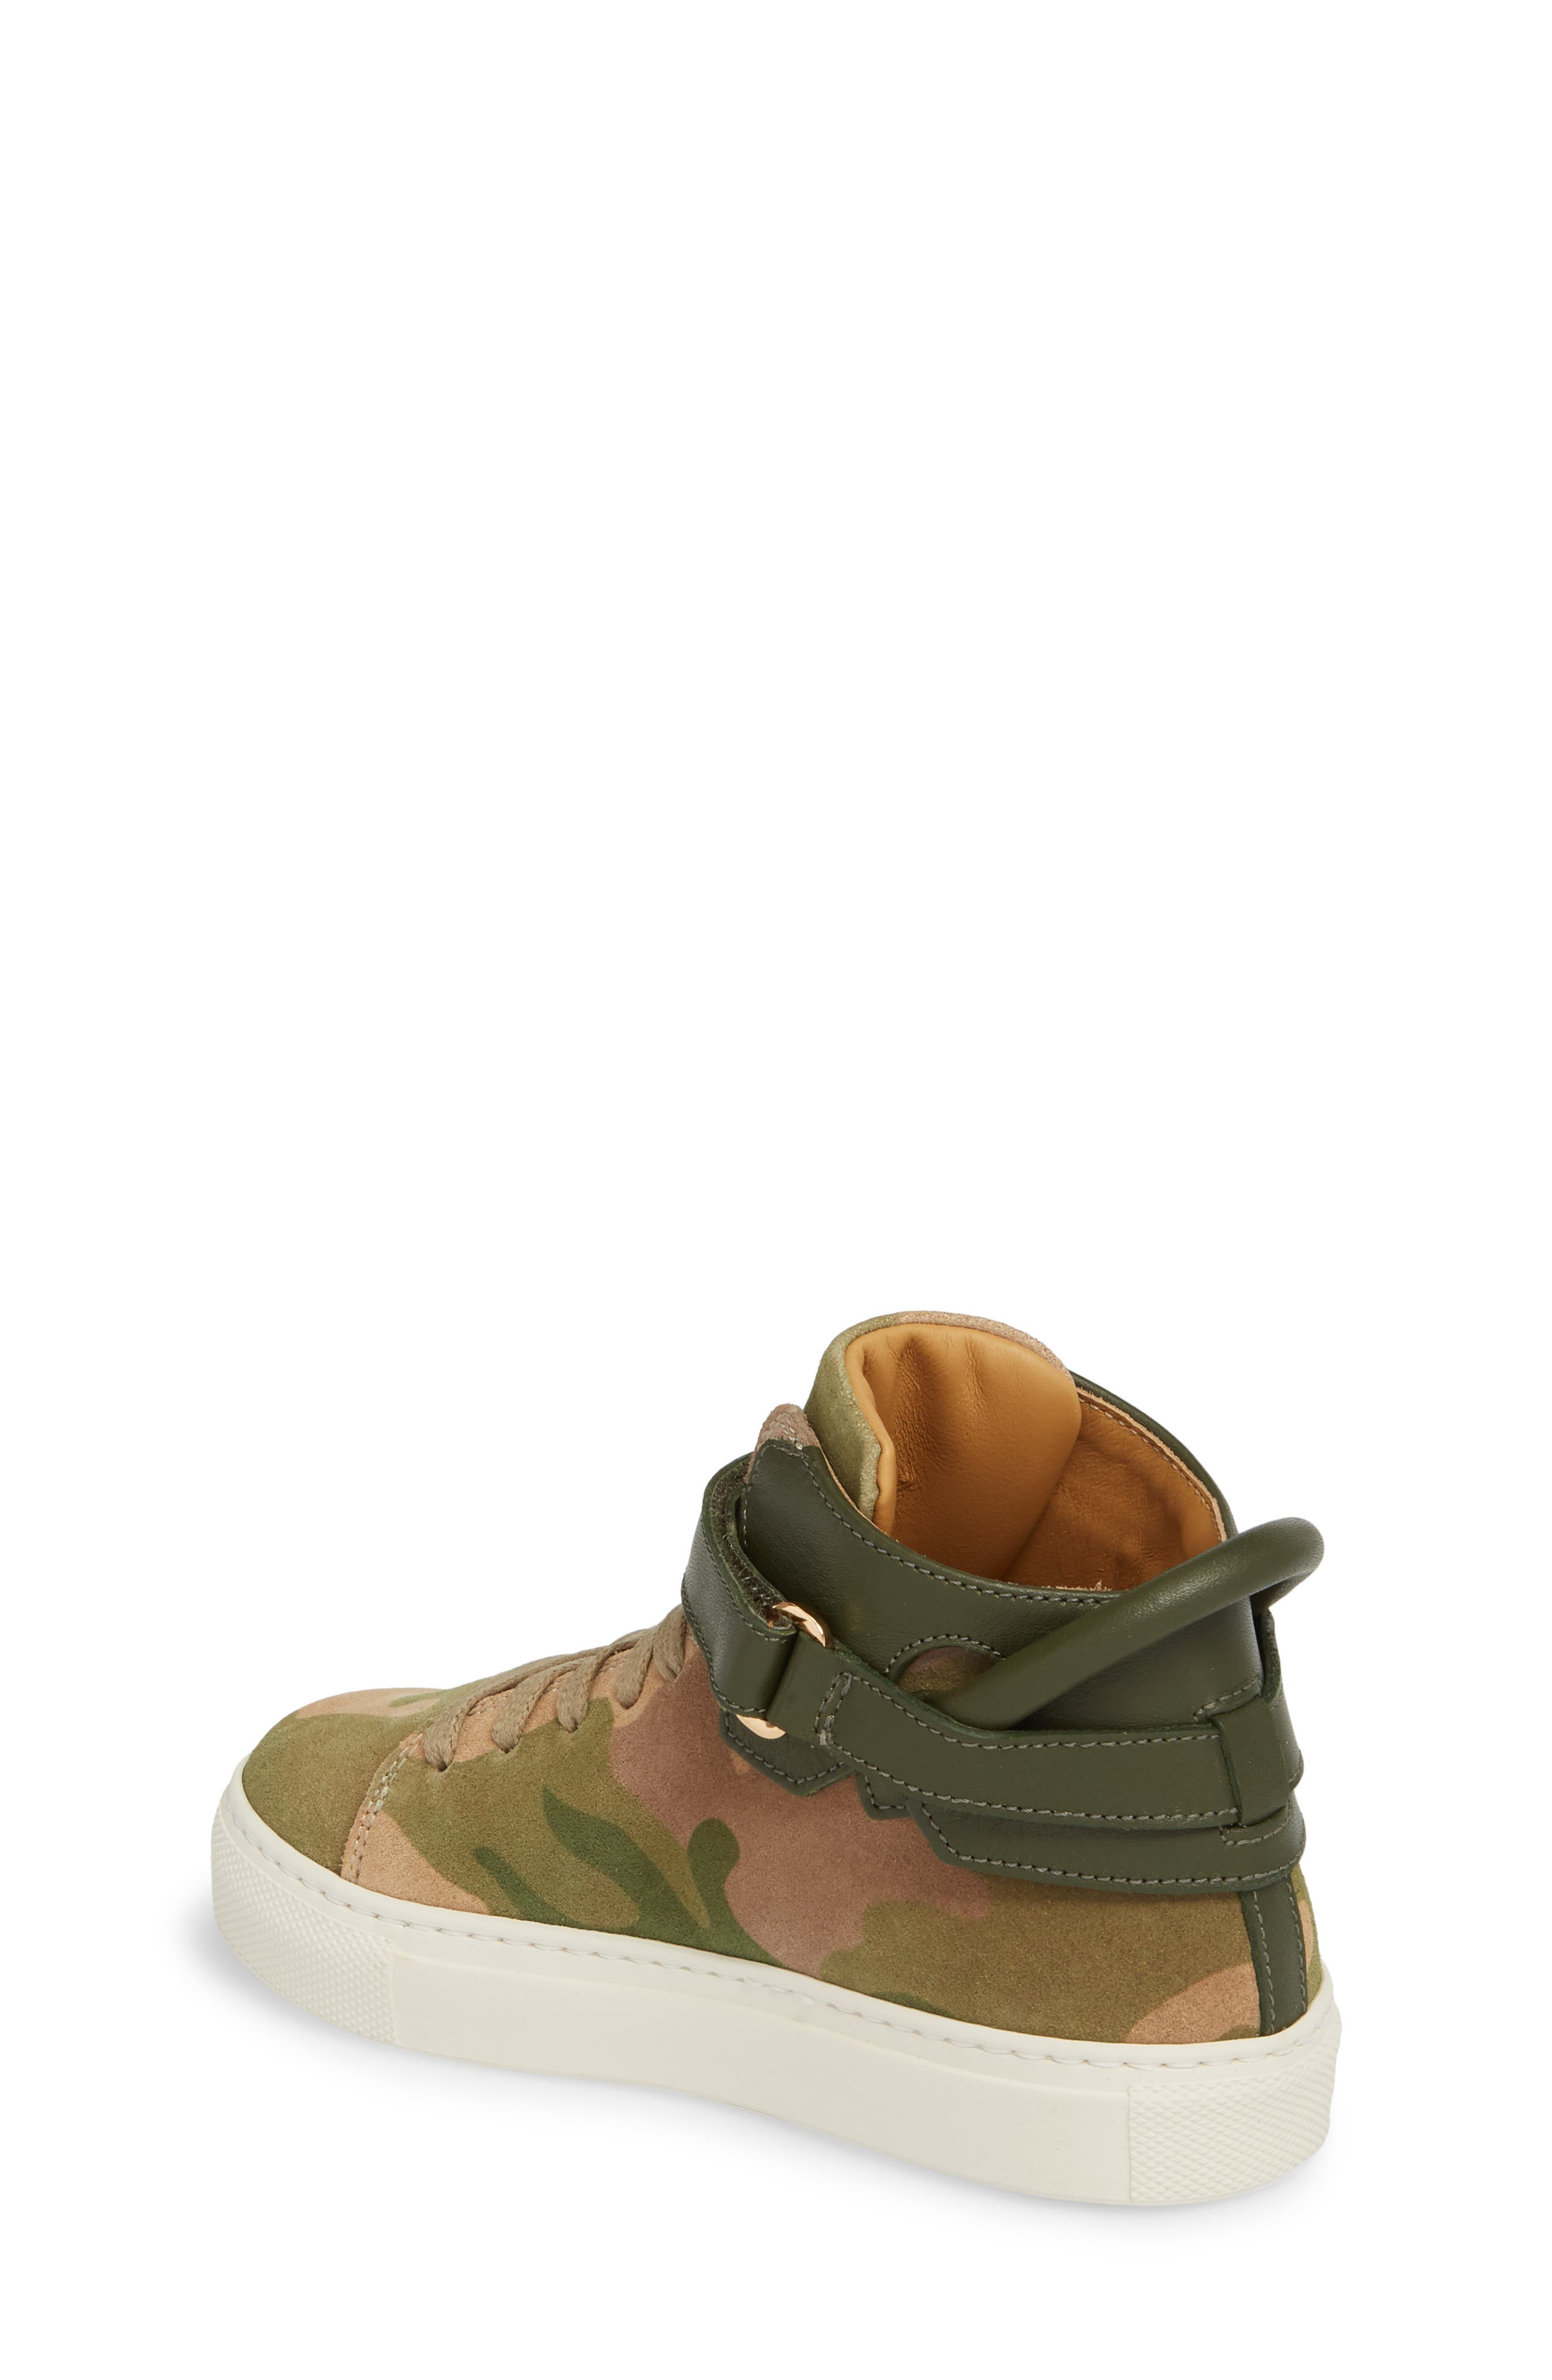 Suede High Top Sneaker,                             Alternate thumbnail 2, color,                             CAMO SUEDE